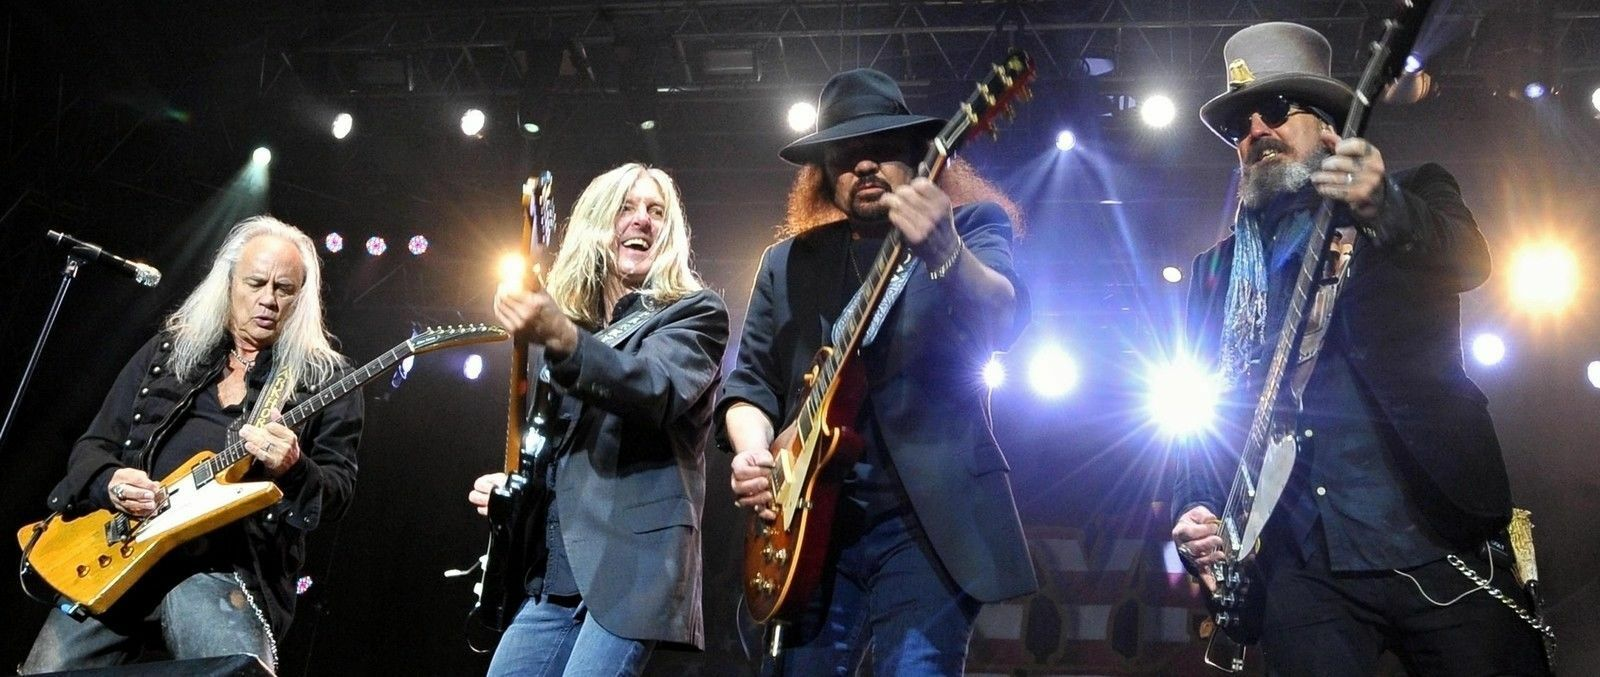 Lynyrd Skynyrd with Marshall Tucker Band